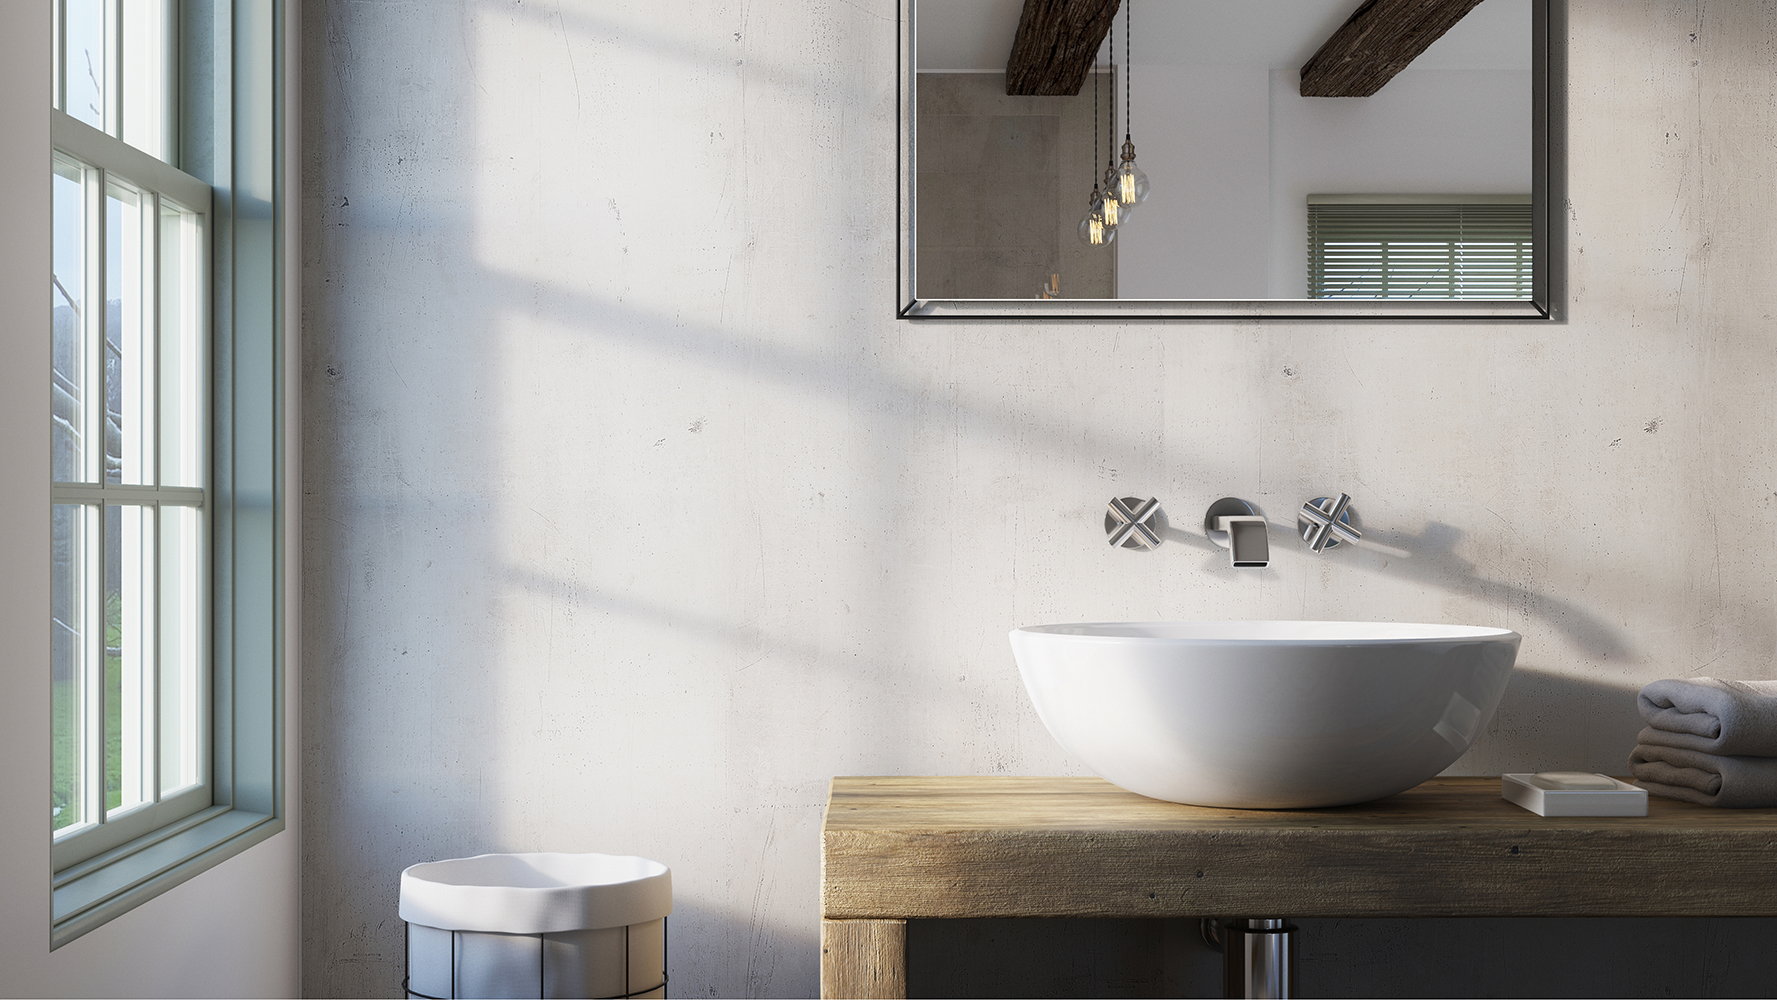 Urban Concrete Showerwall panel from the Quarry Collection